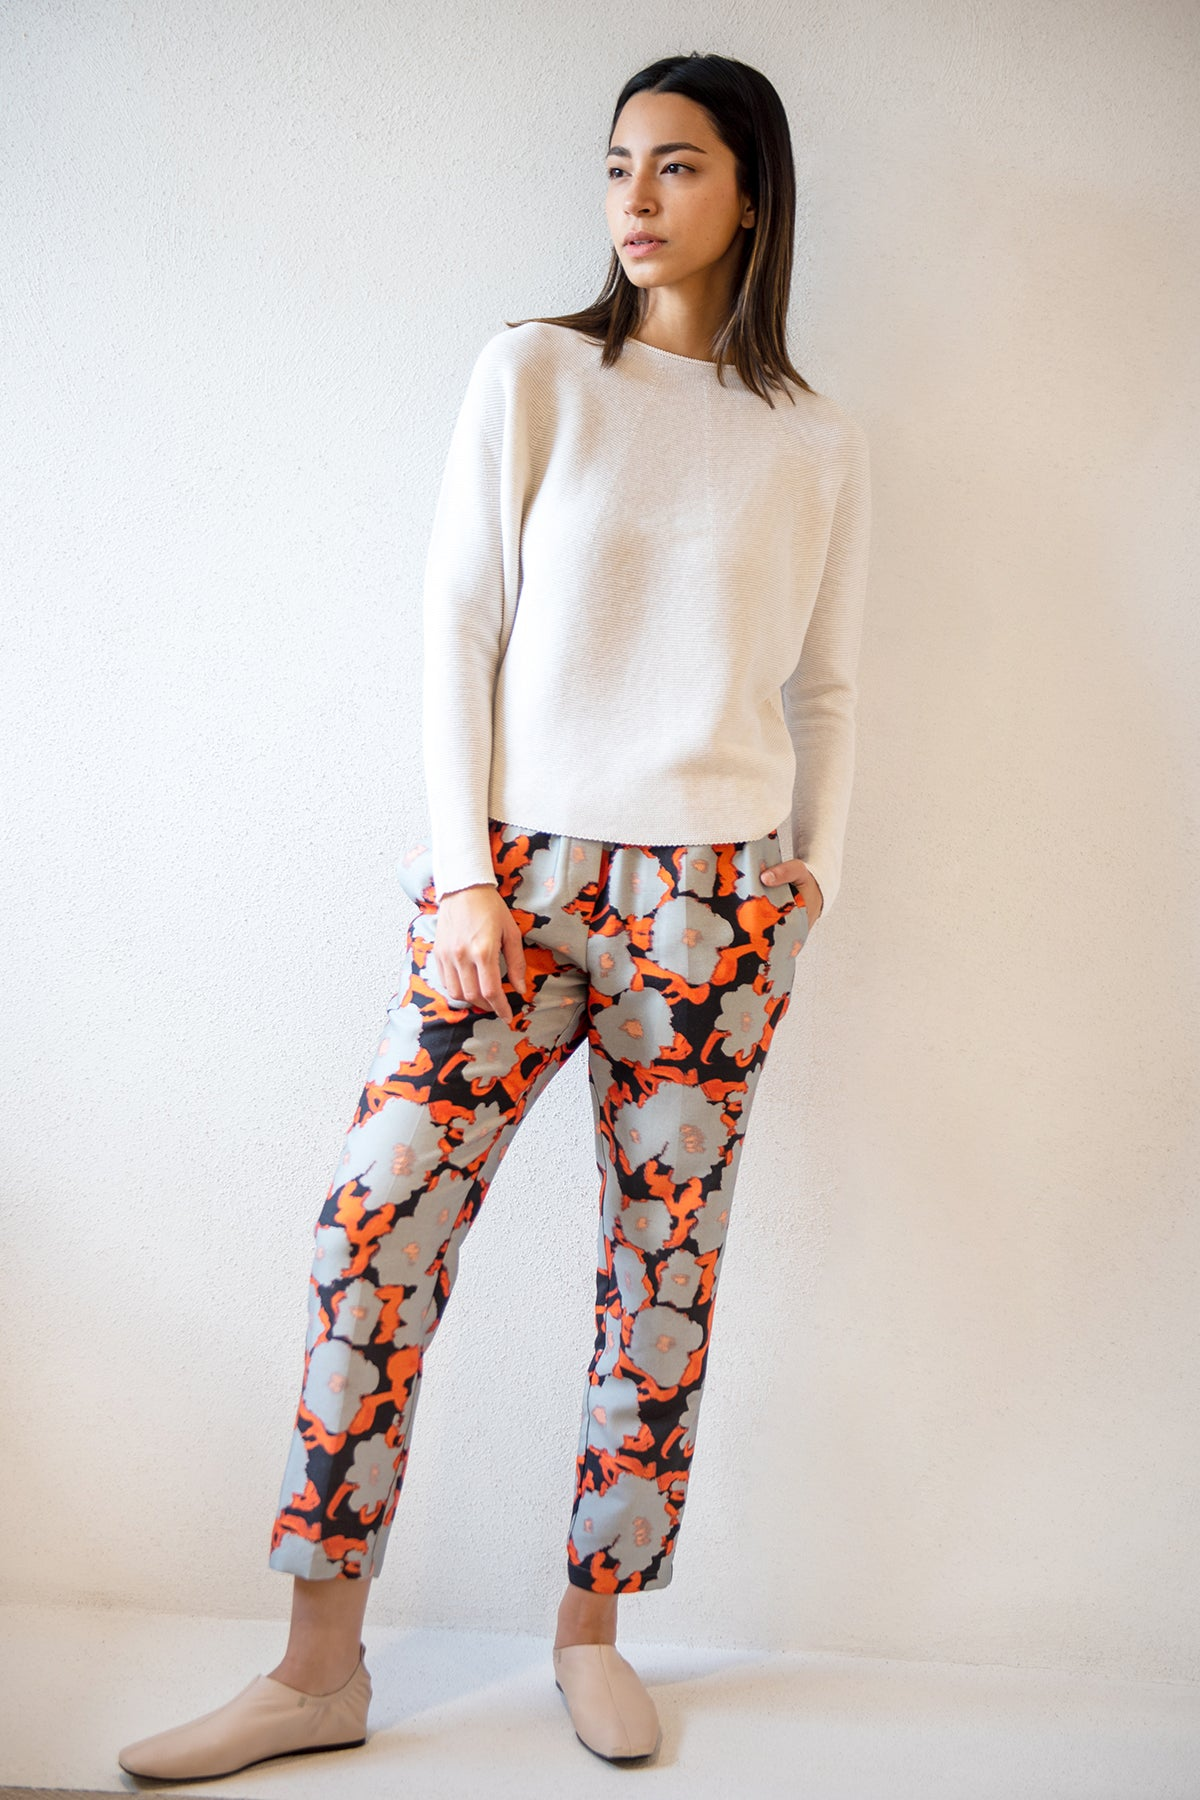 Christian Wijnants - PERUN pull on pant, poppy